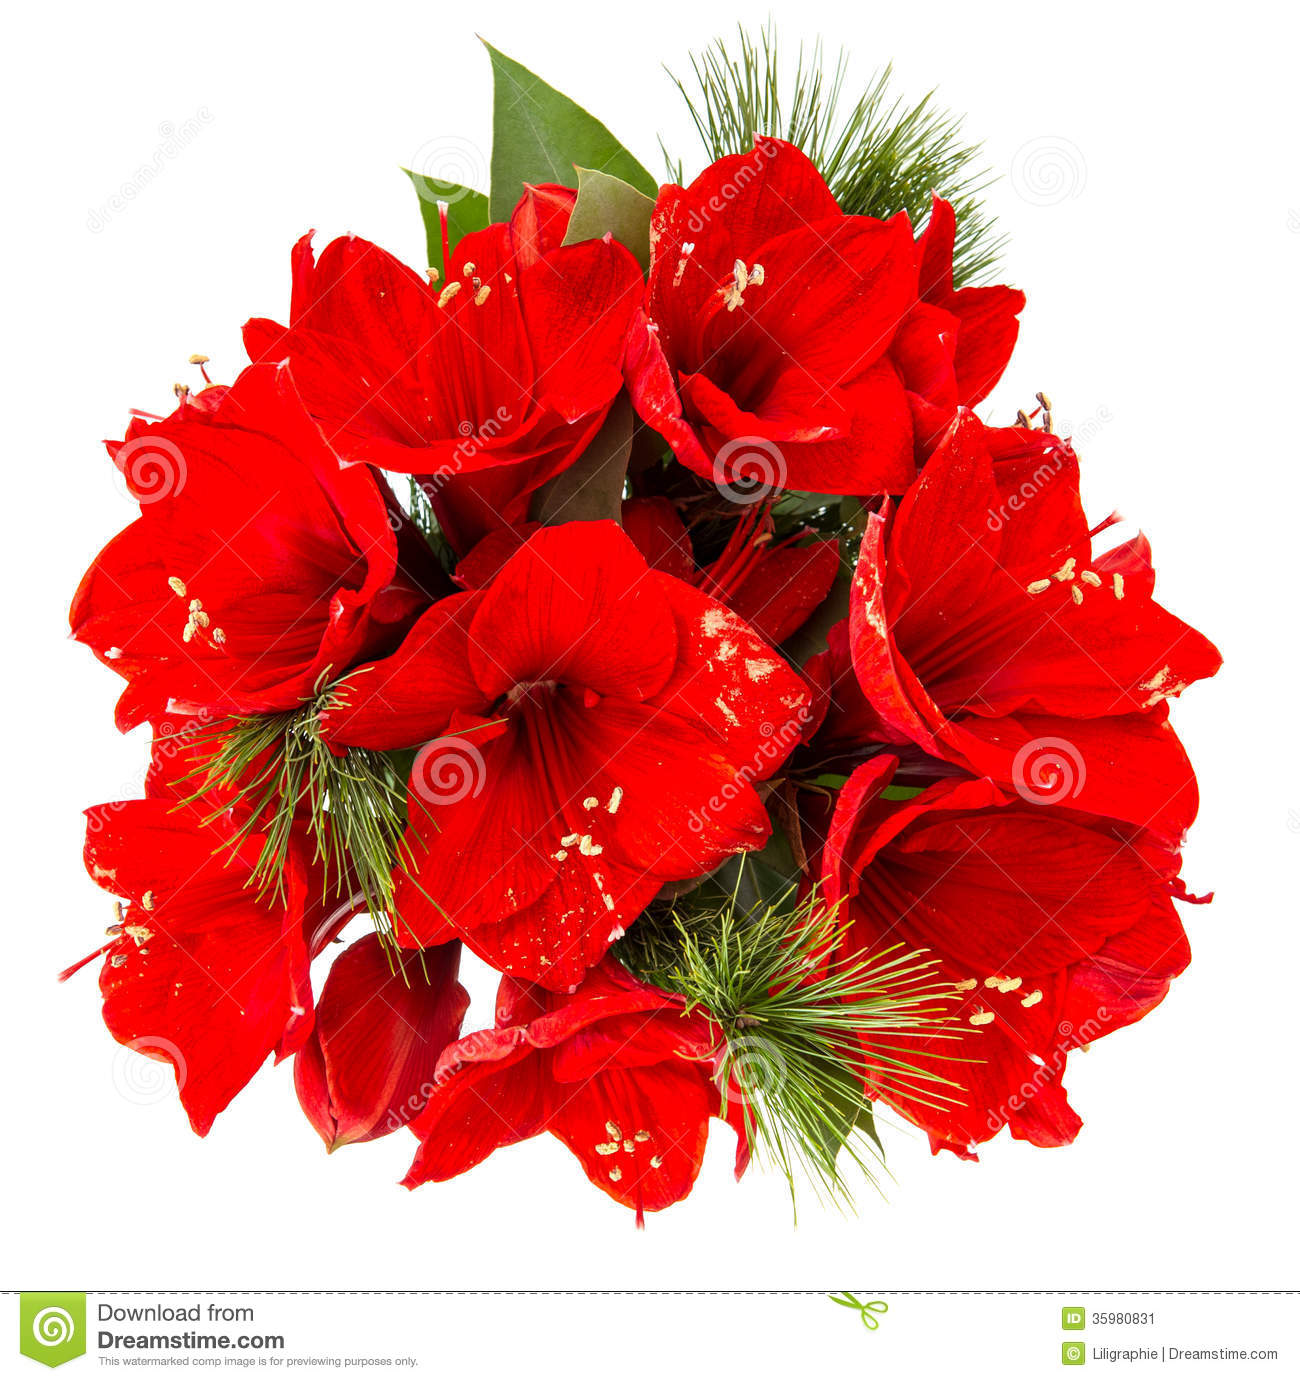 bouquet amaryllis red christmas flowers isolated white background 35980831